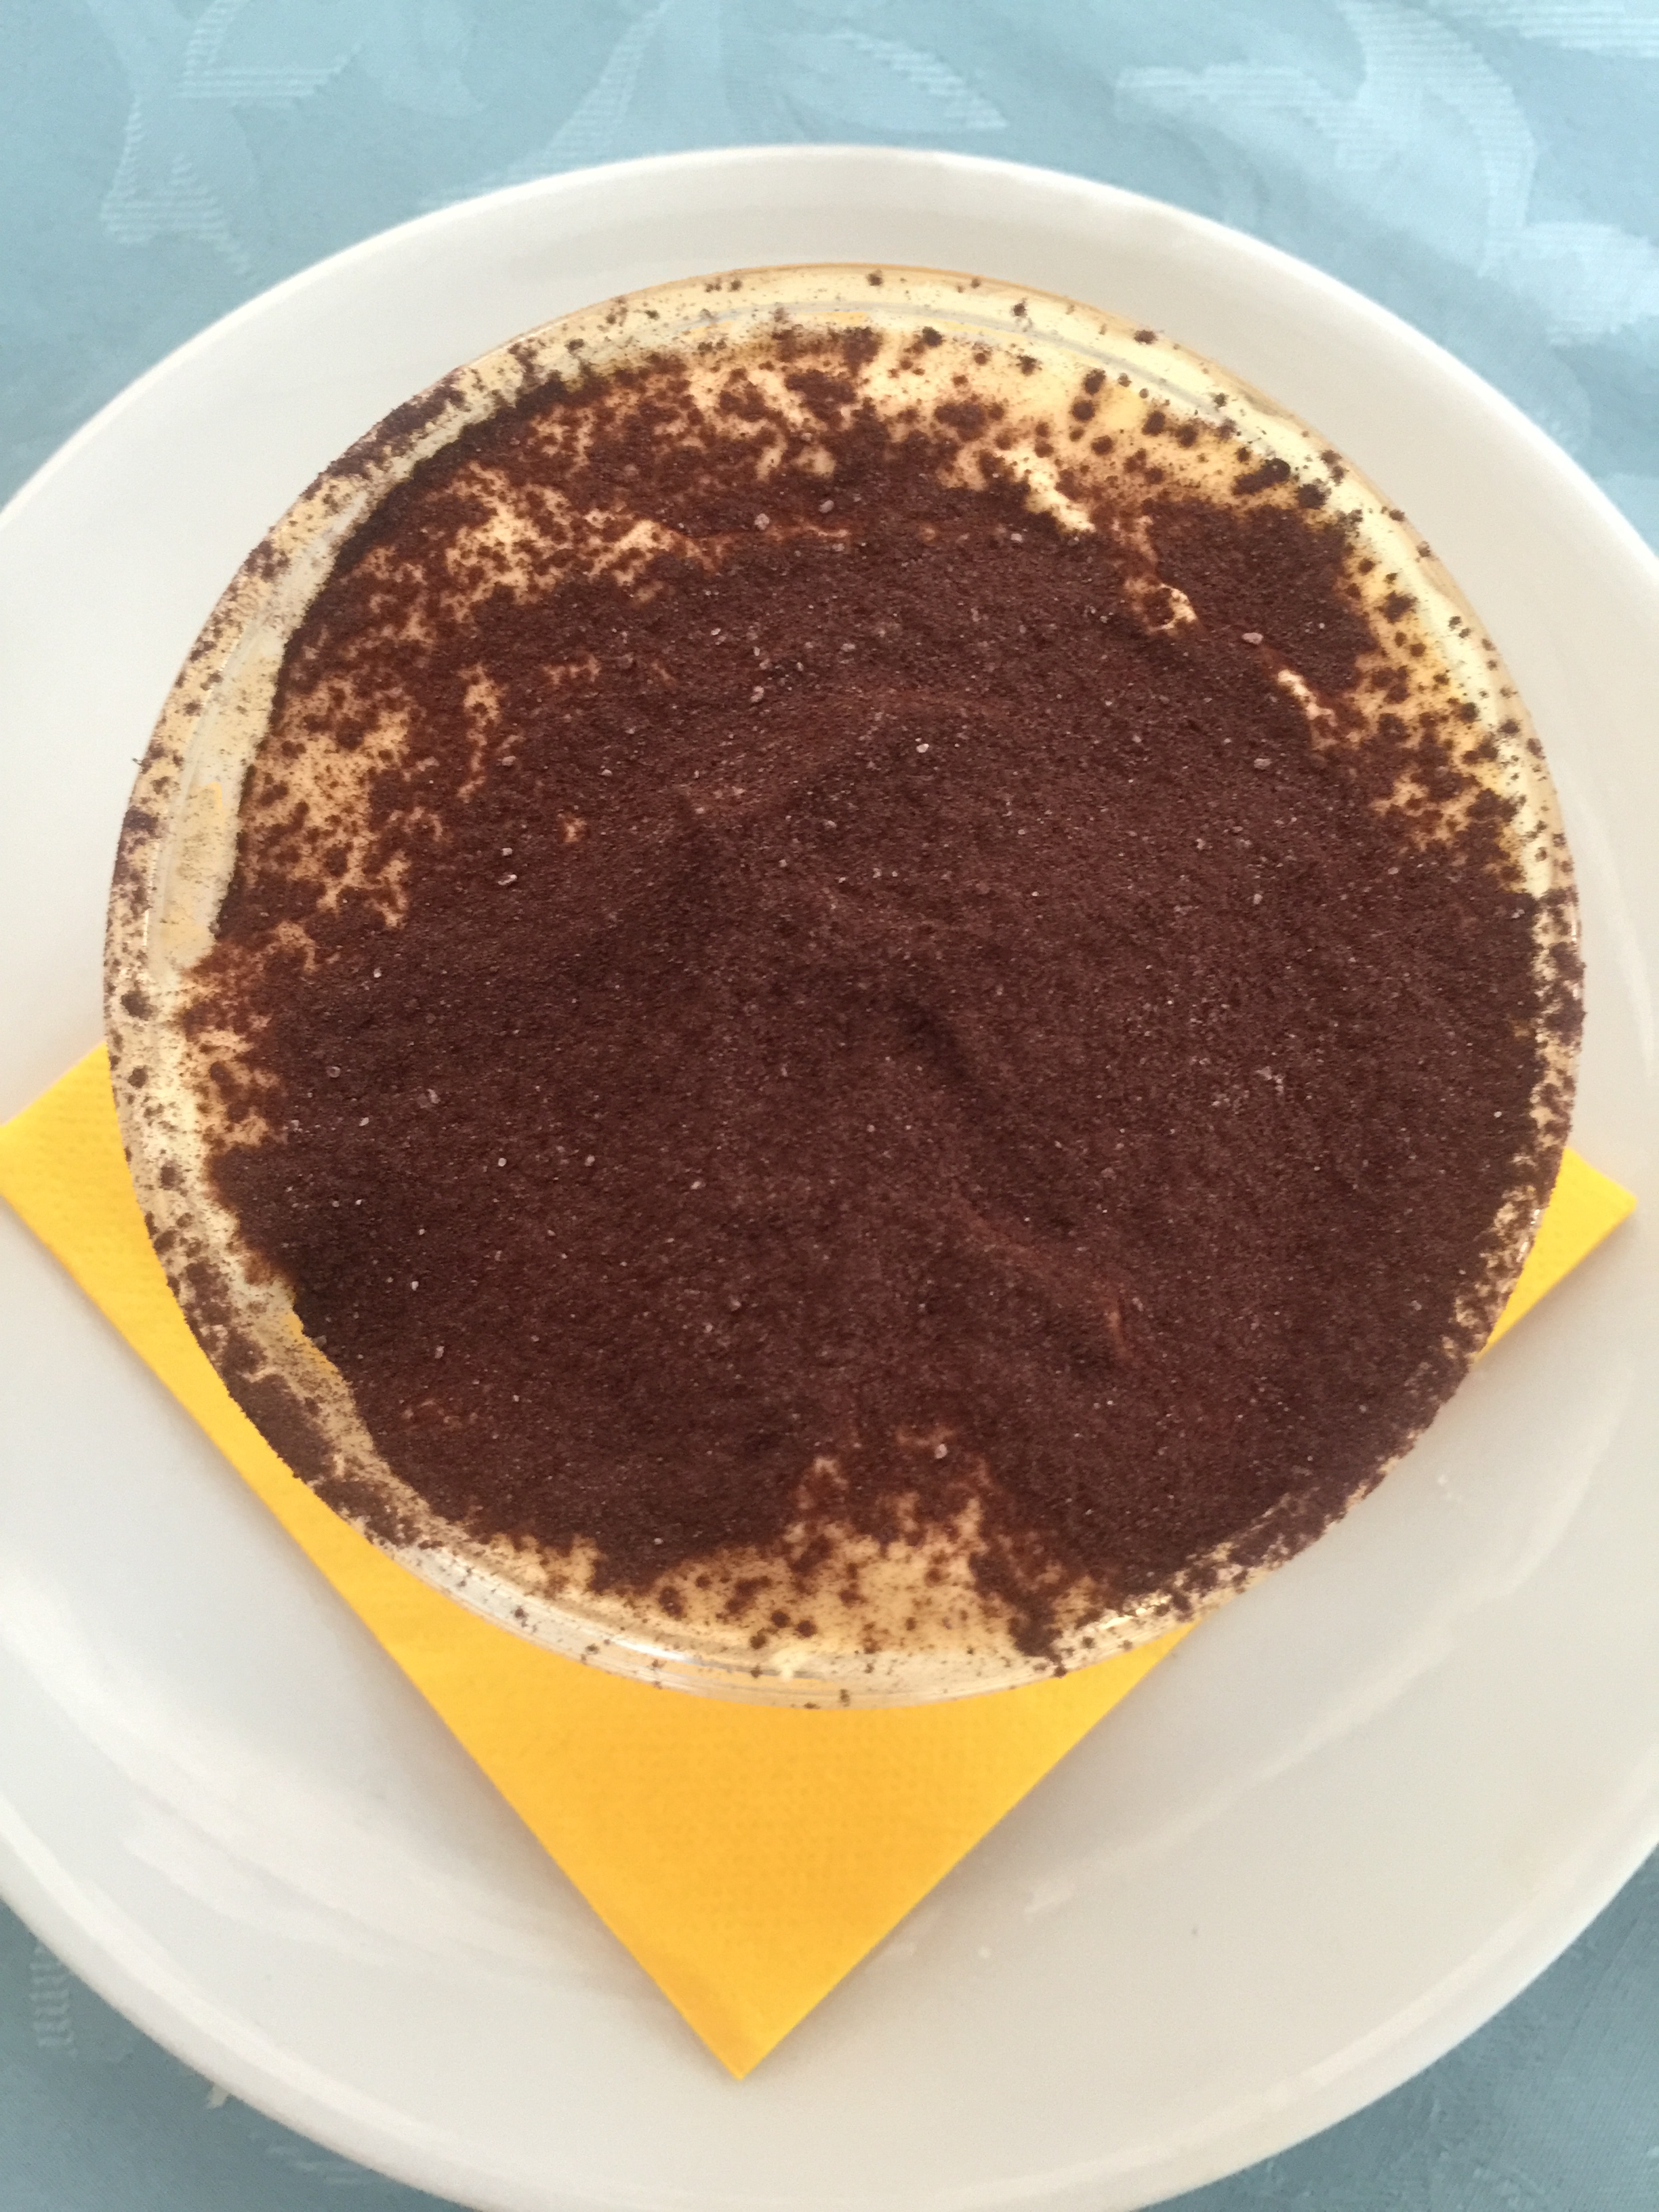 Top off a meal with tiramisu